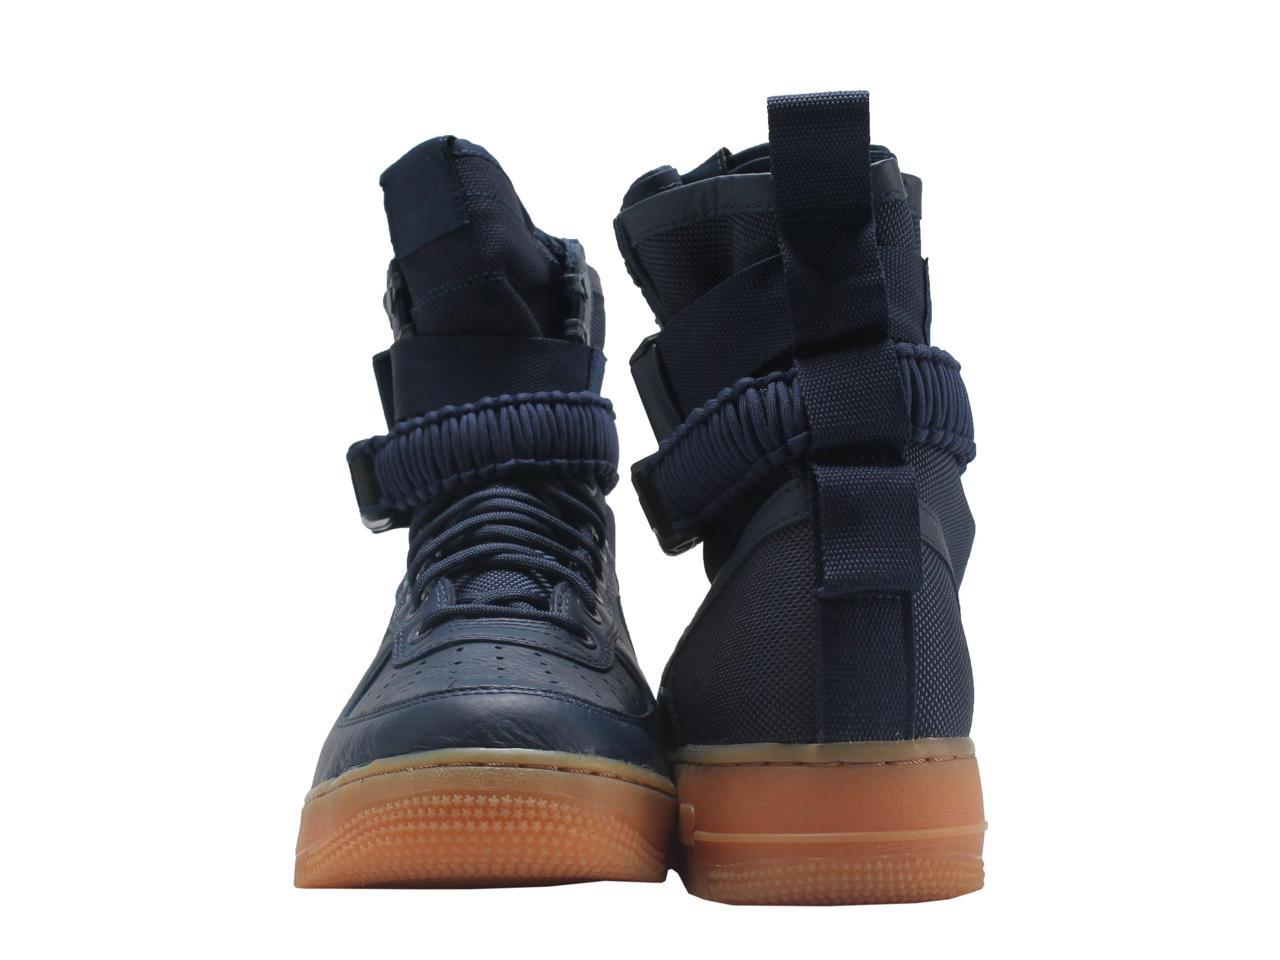 nike sf af1 air force force air 1, forces spéciales navy & # 47; gum hommes & # 39; s chaussures 864024-400 taille 10,5 70d284